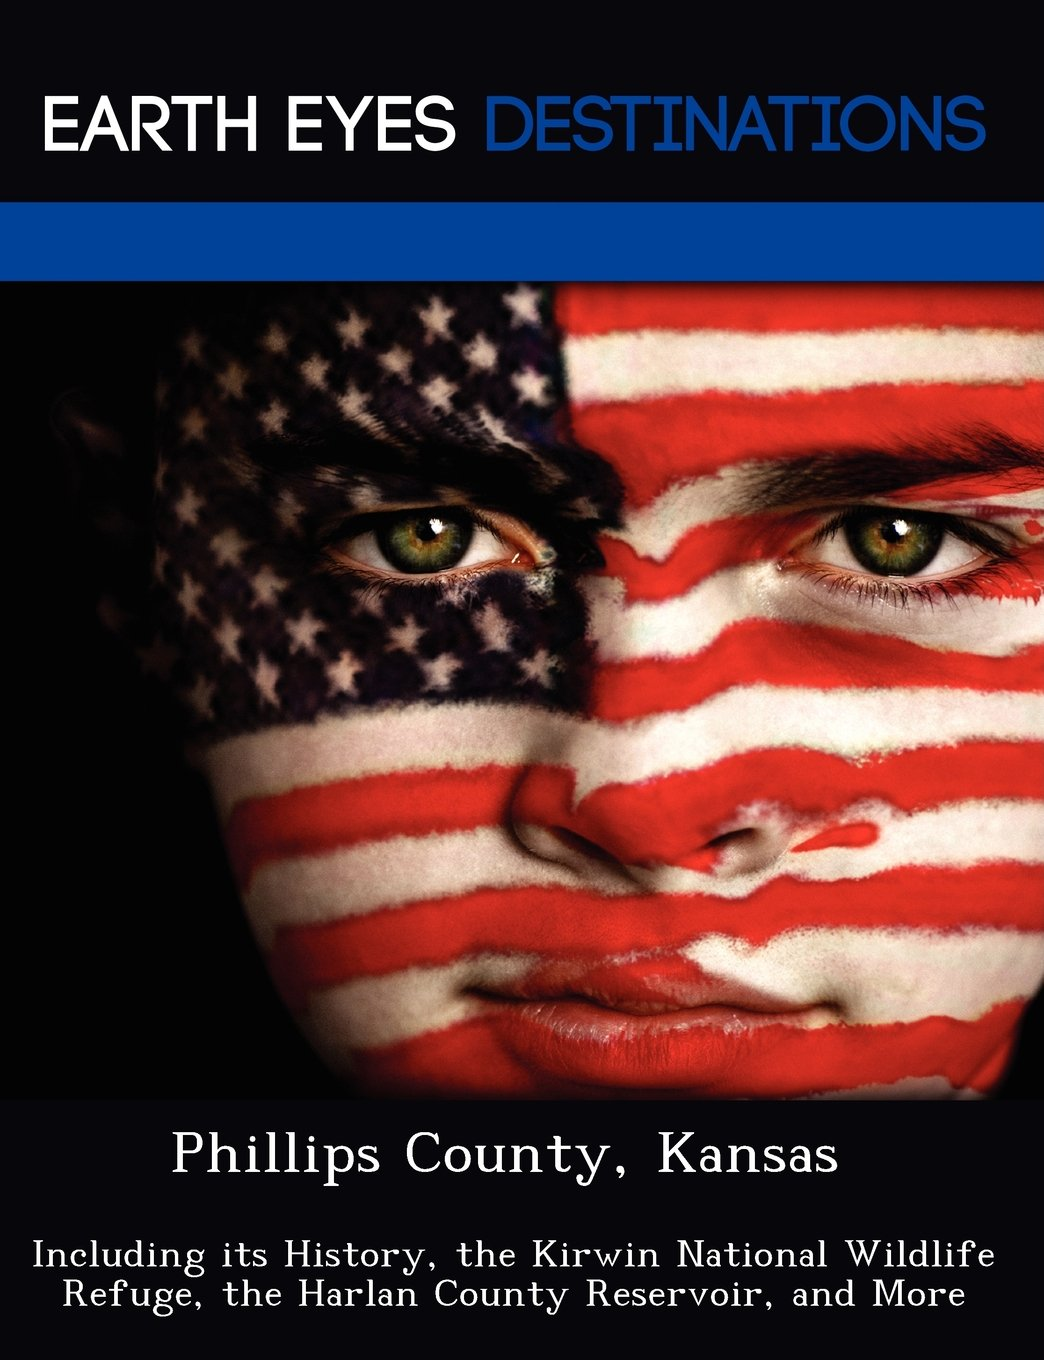 Kansas phillips county kirwin - Phillips County Kansas Including Its History The Kirwin National Wildlife Refuge The Harlan County Reservoir And More Sharon Clyde 9781249240853